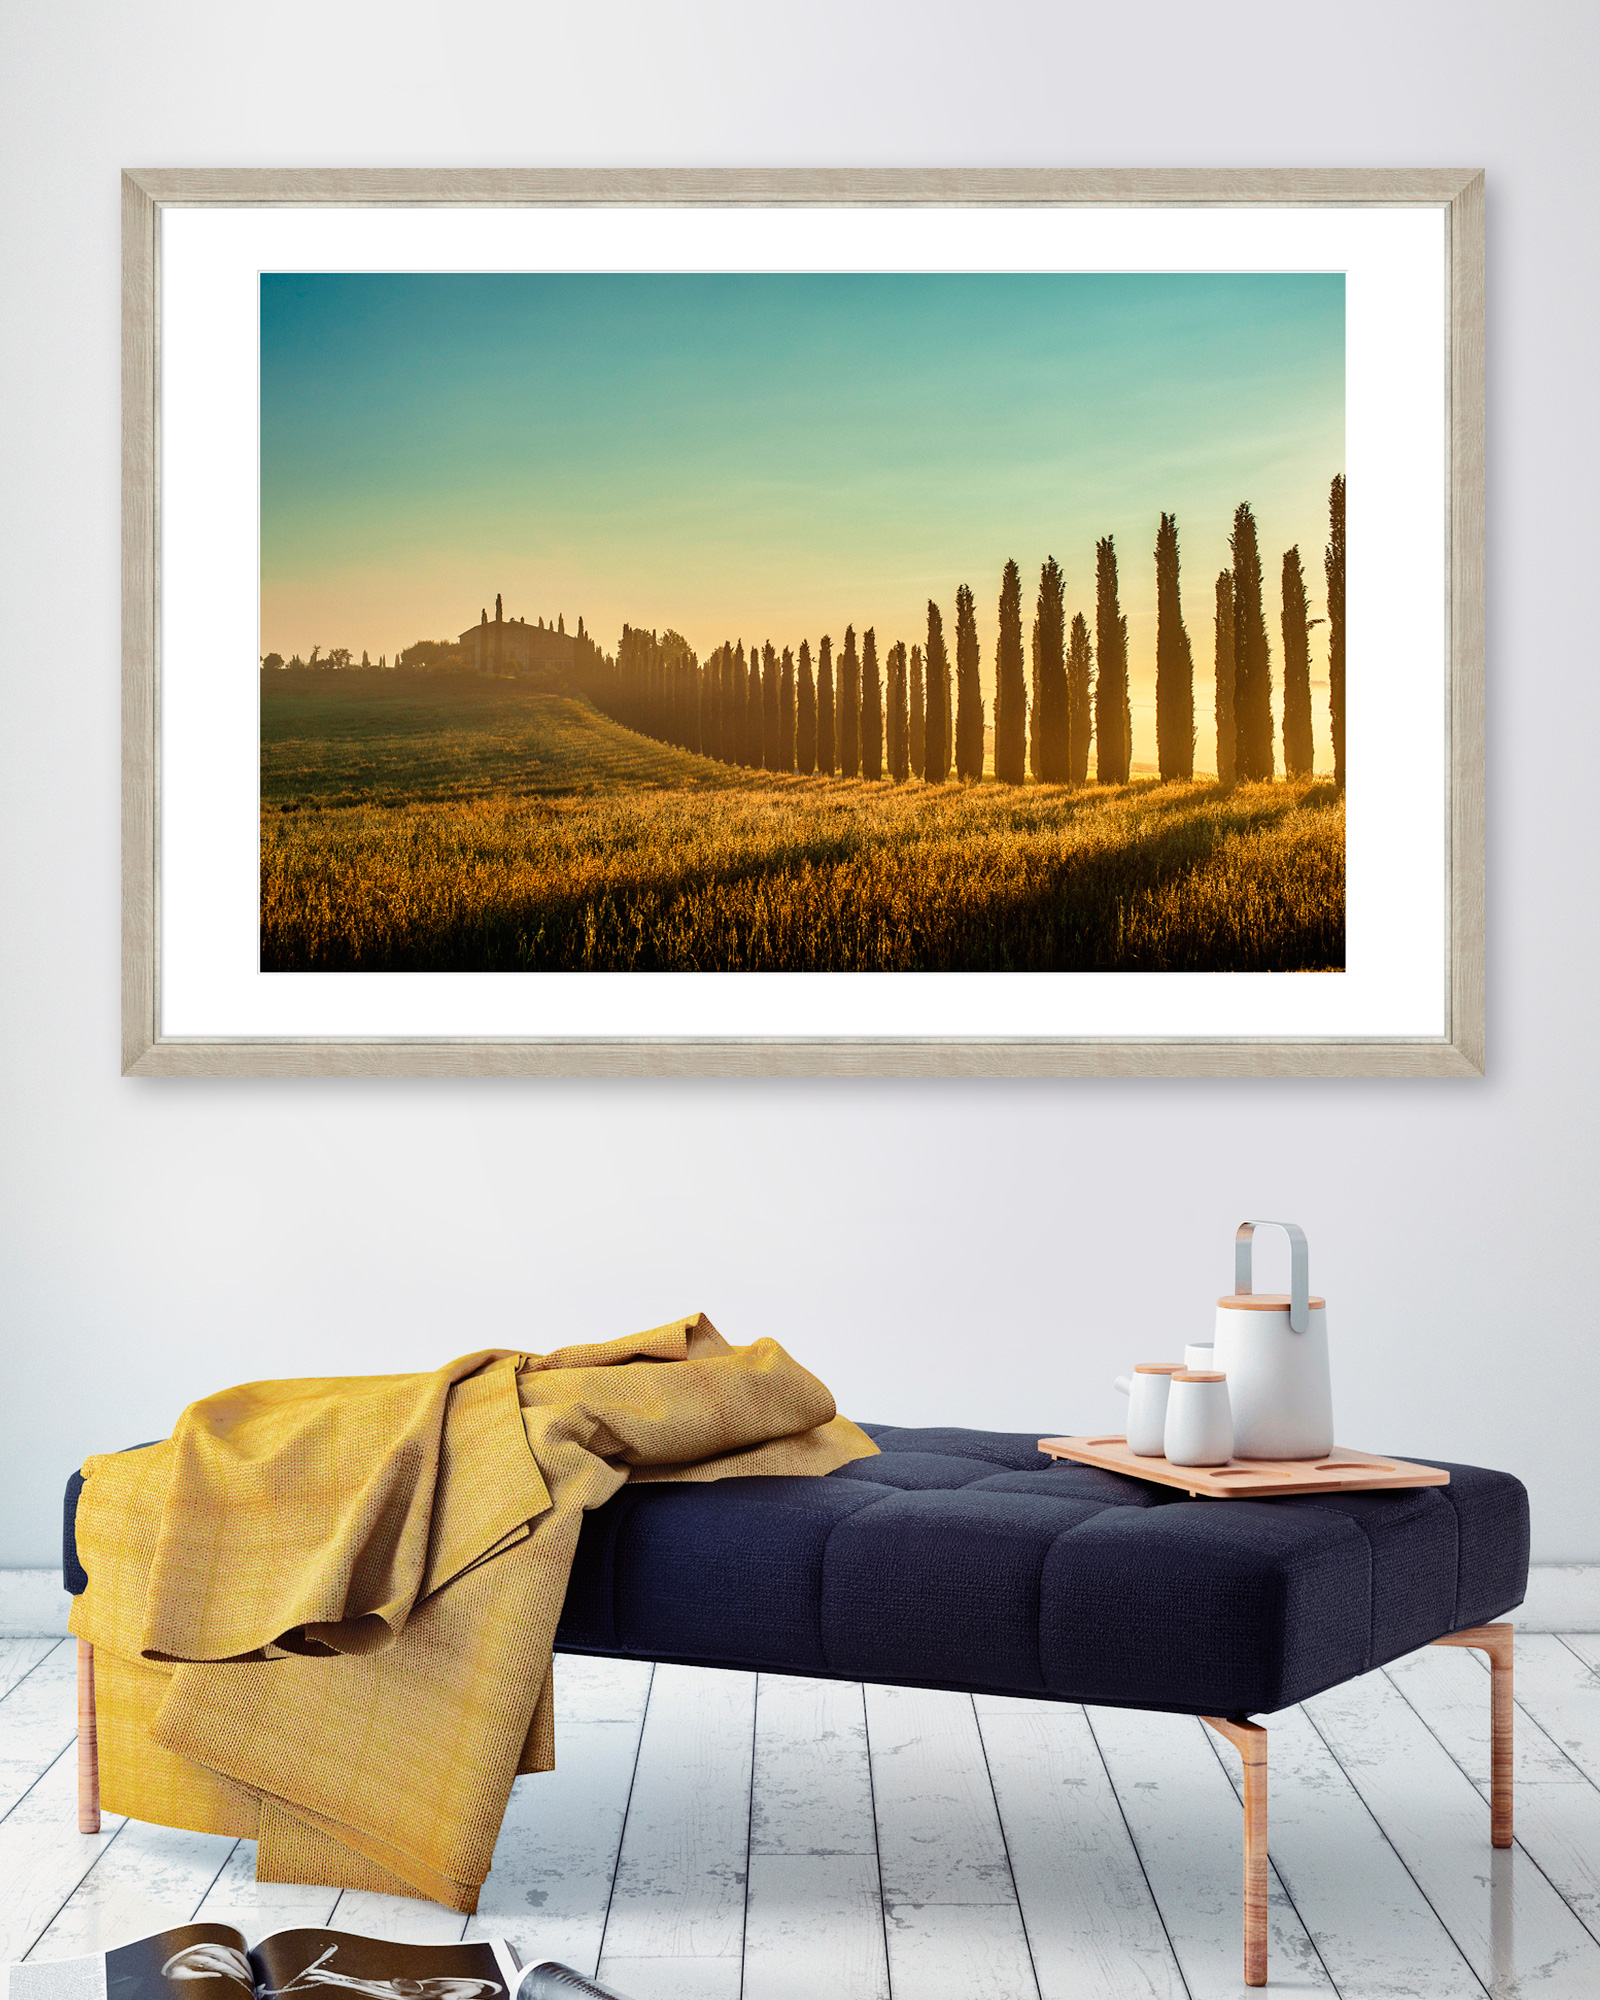 Tablou Framed Art Tuscany Landscape imagine